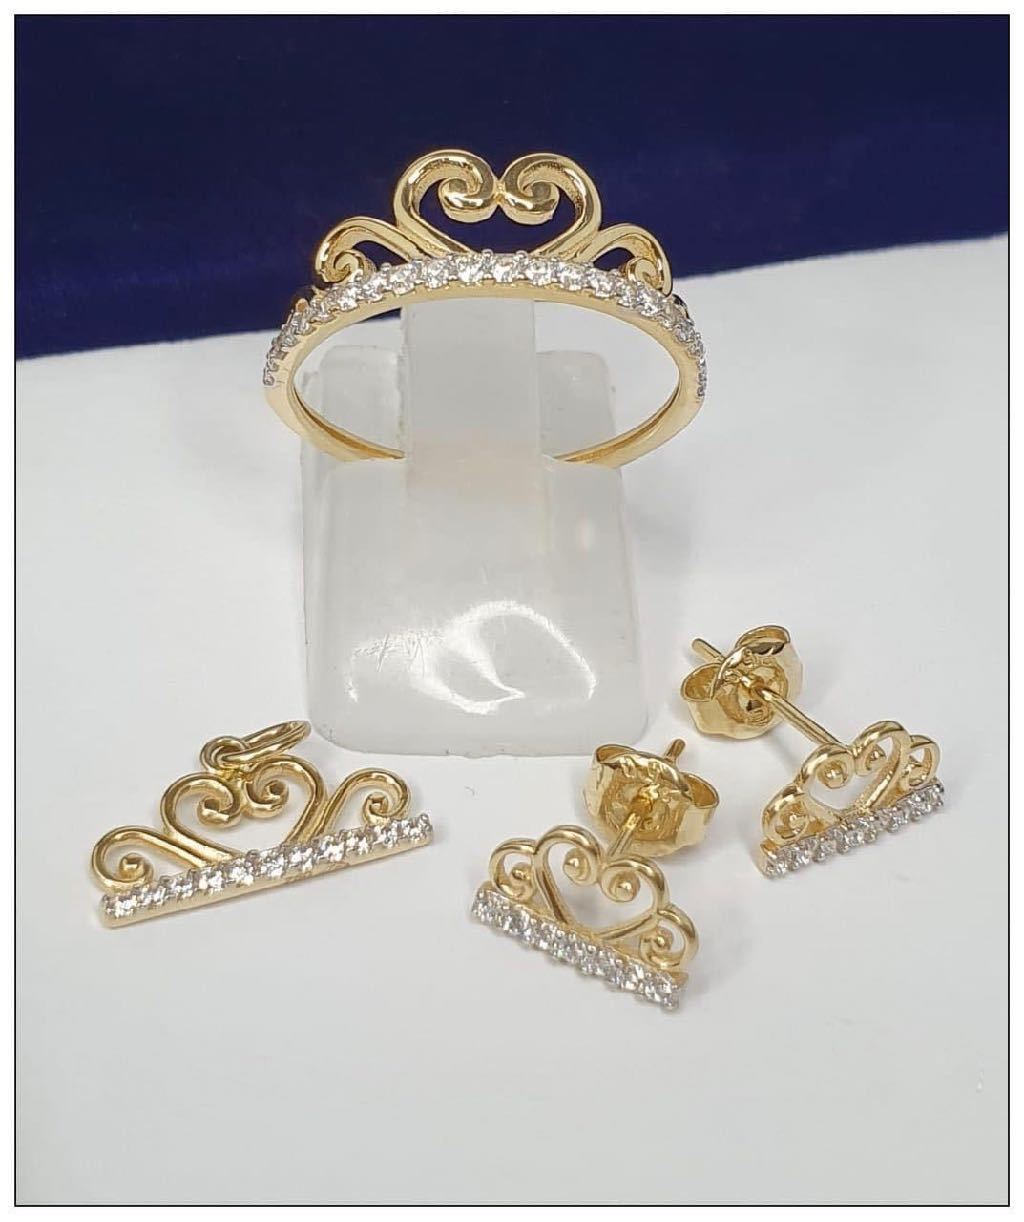 Crown Jewelry Set in 18K Gold 21jntt18 - ZNZ Jewelry Philippines